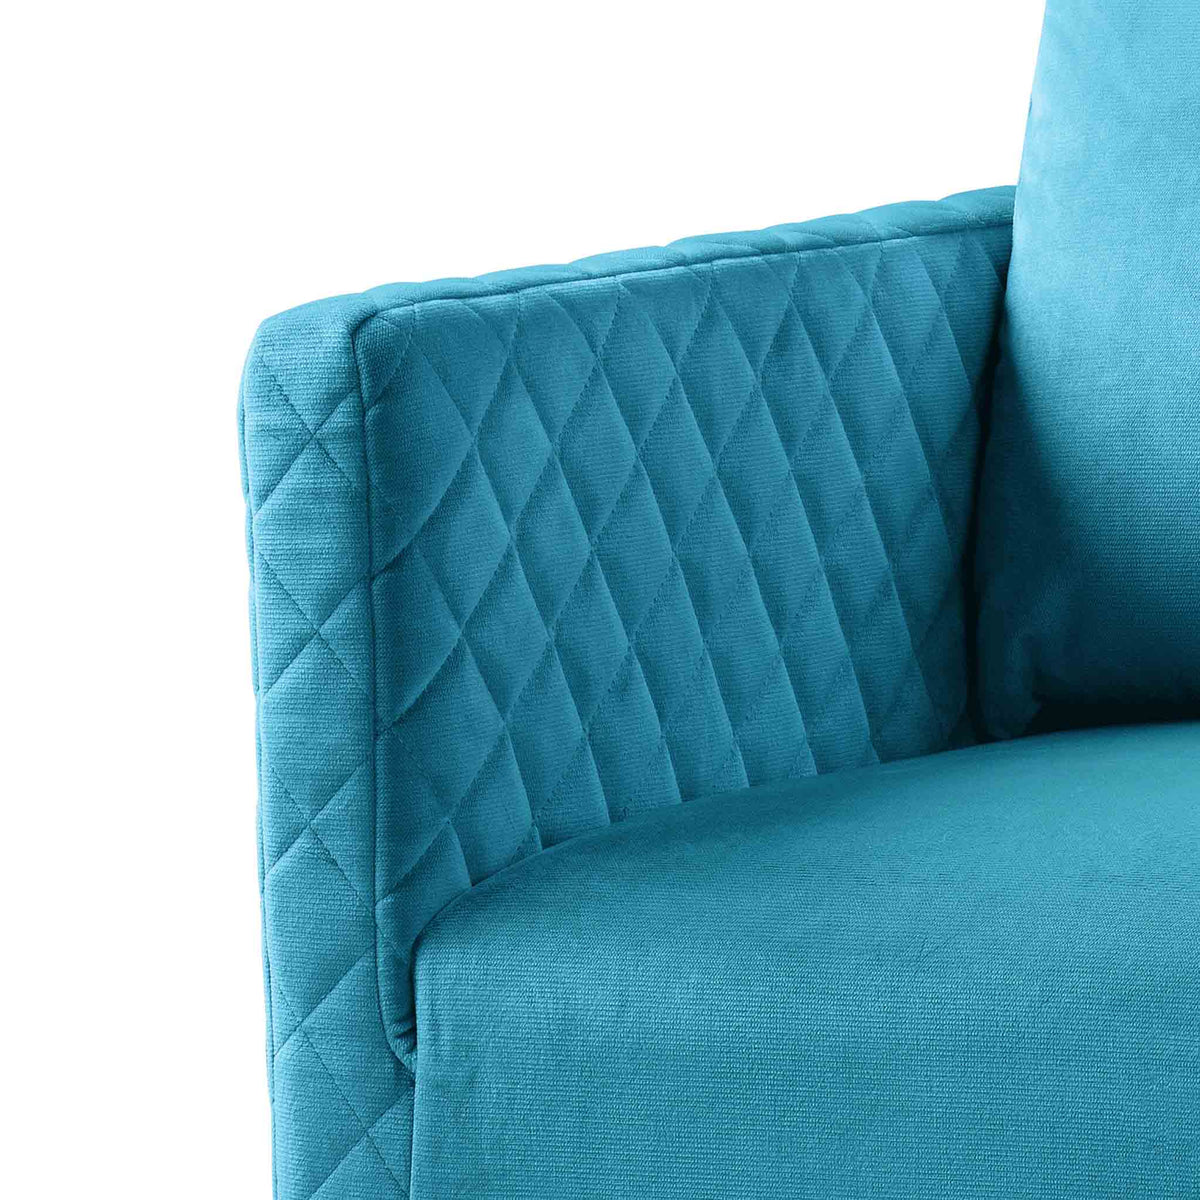 close up of the upholstered velvet fabric on the Bali Lagoon Velvet Accent Chair